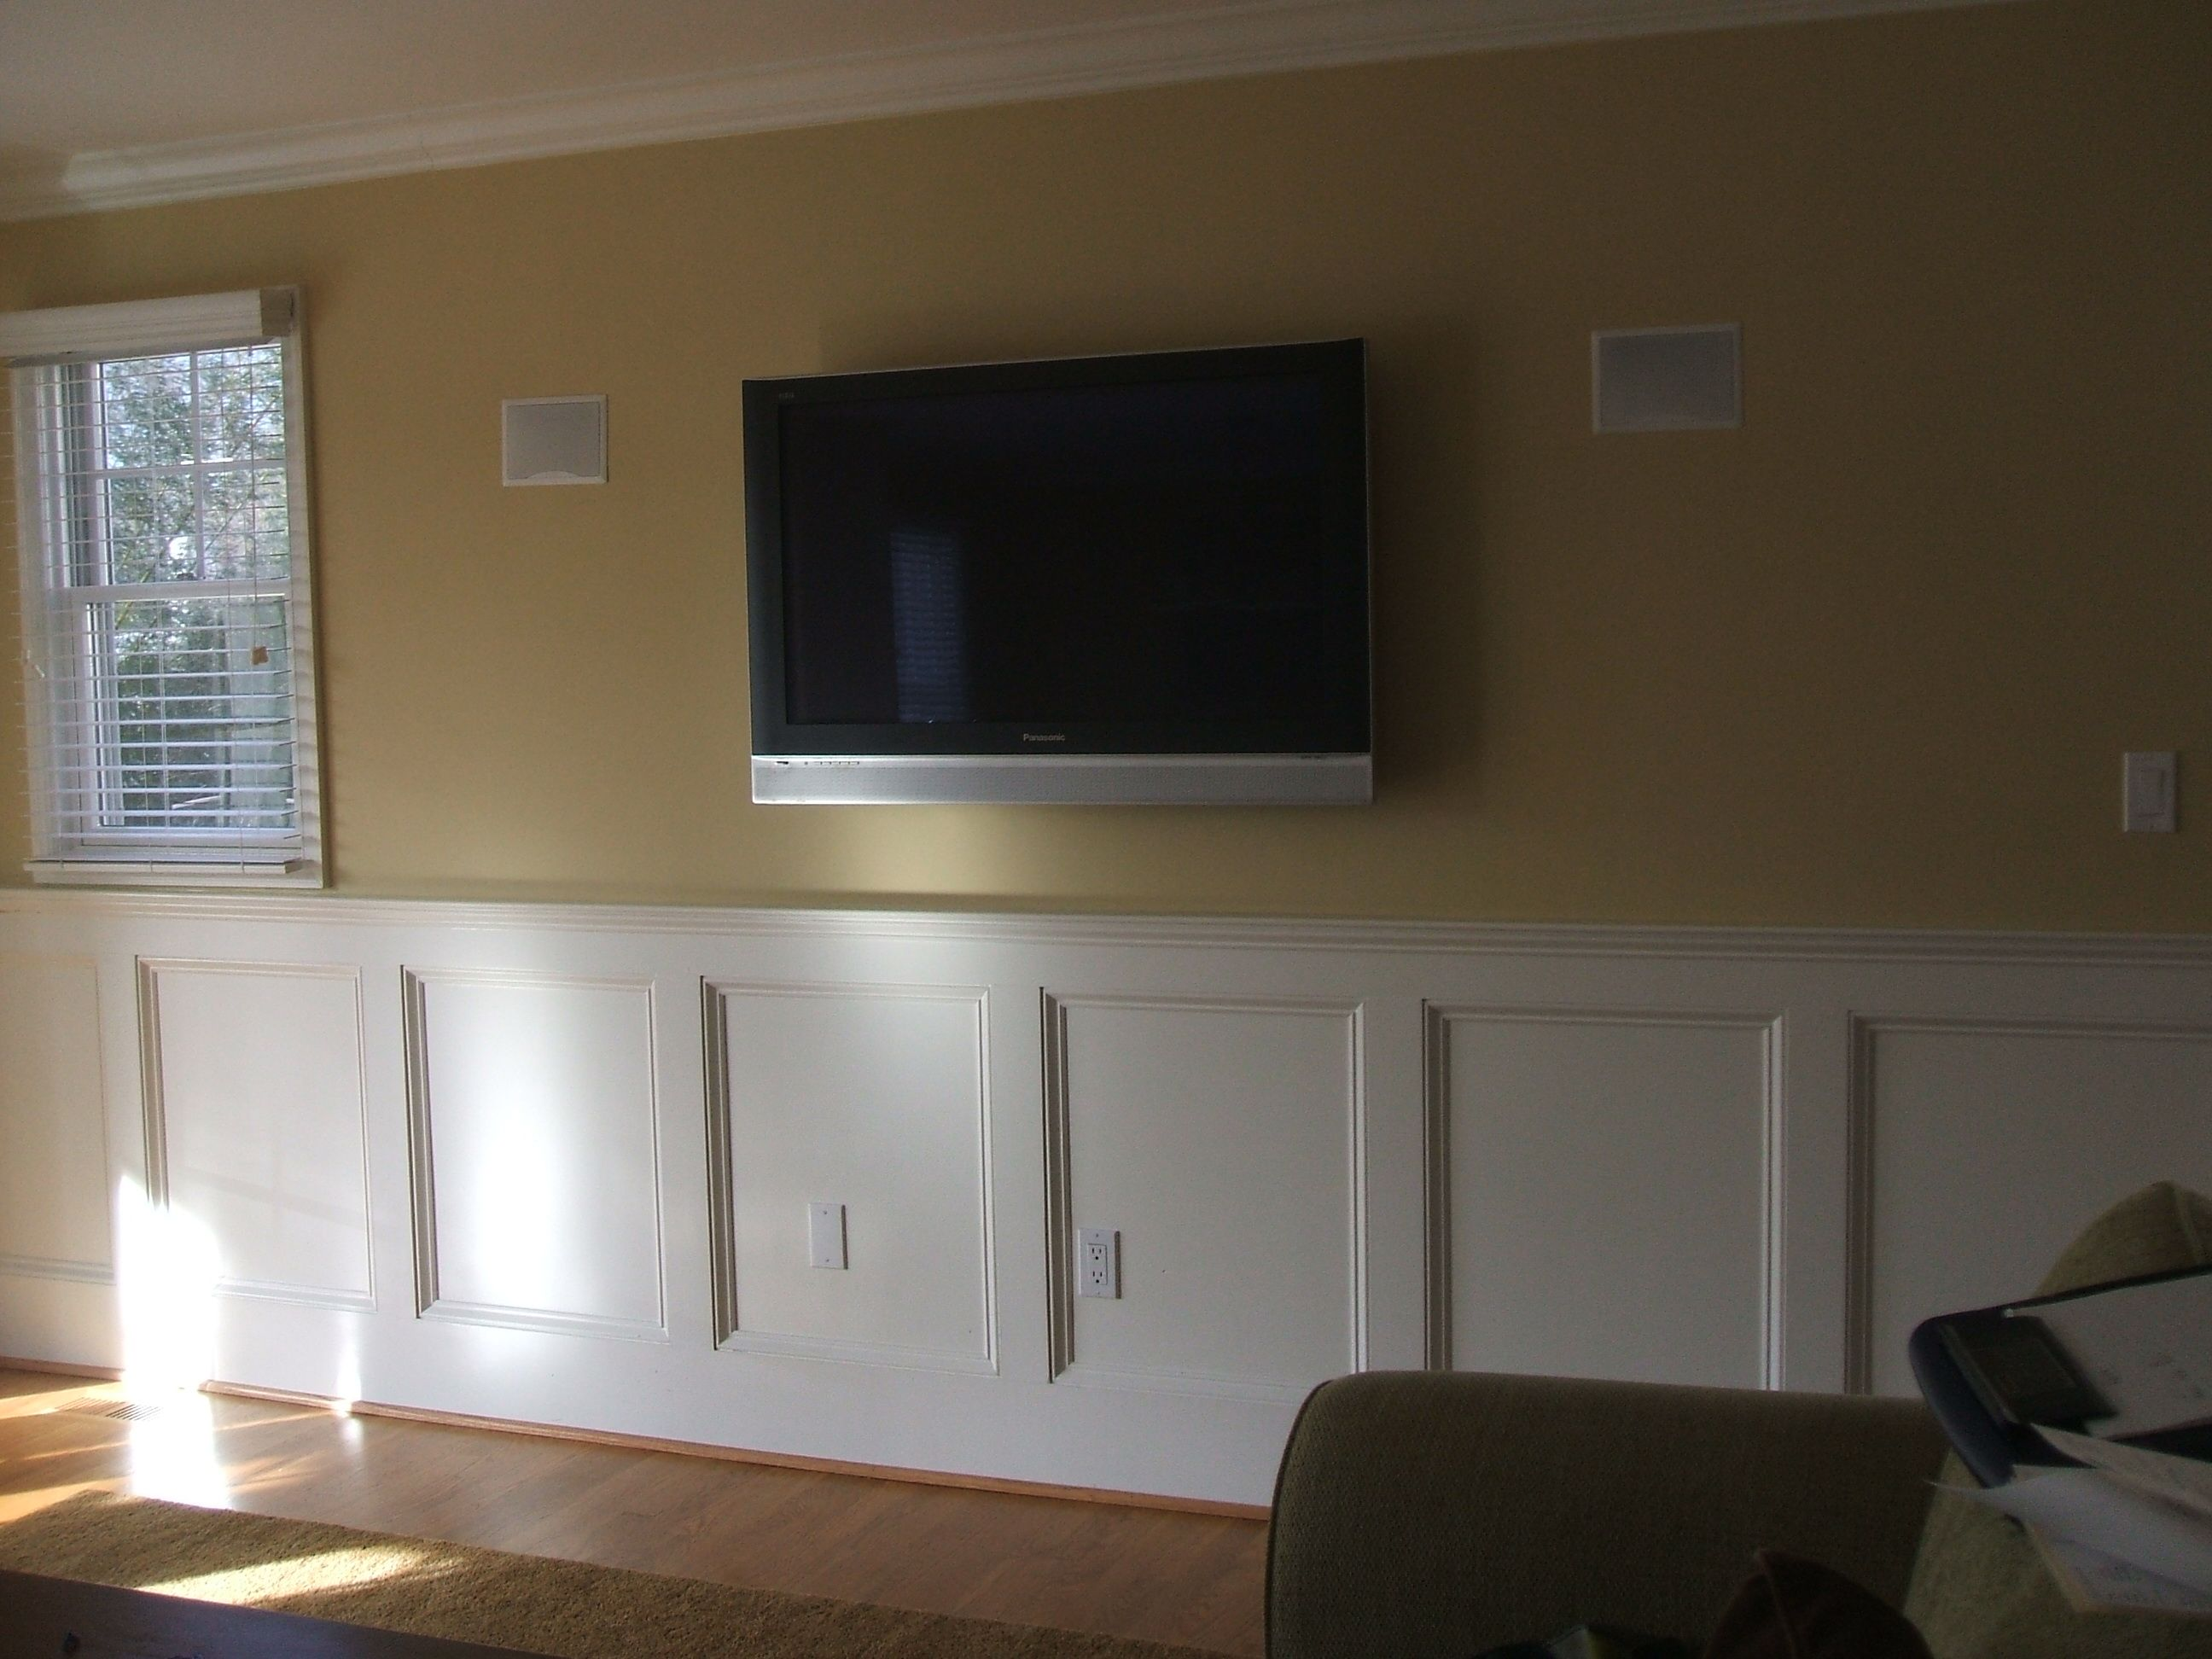 Walls In Living Room And Morning Wainscoting Idea Number Four Shows A Classic Craftsman